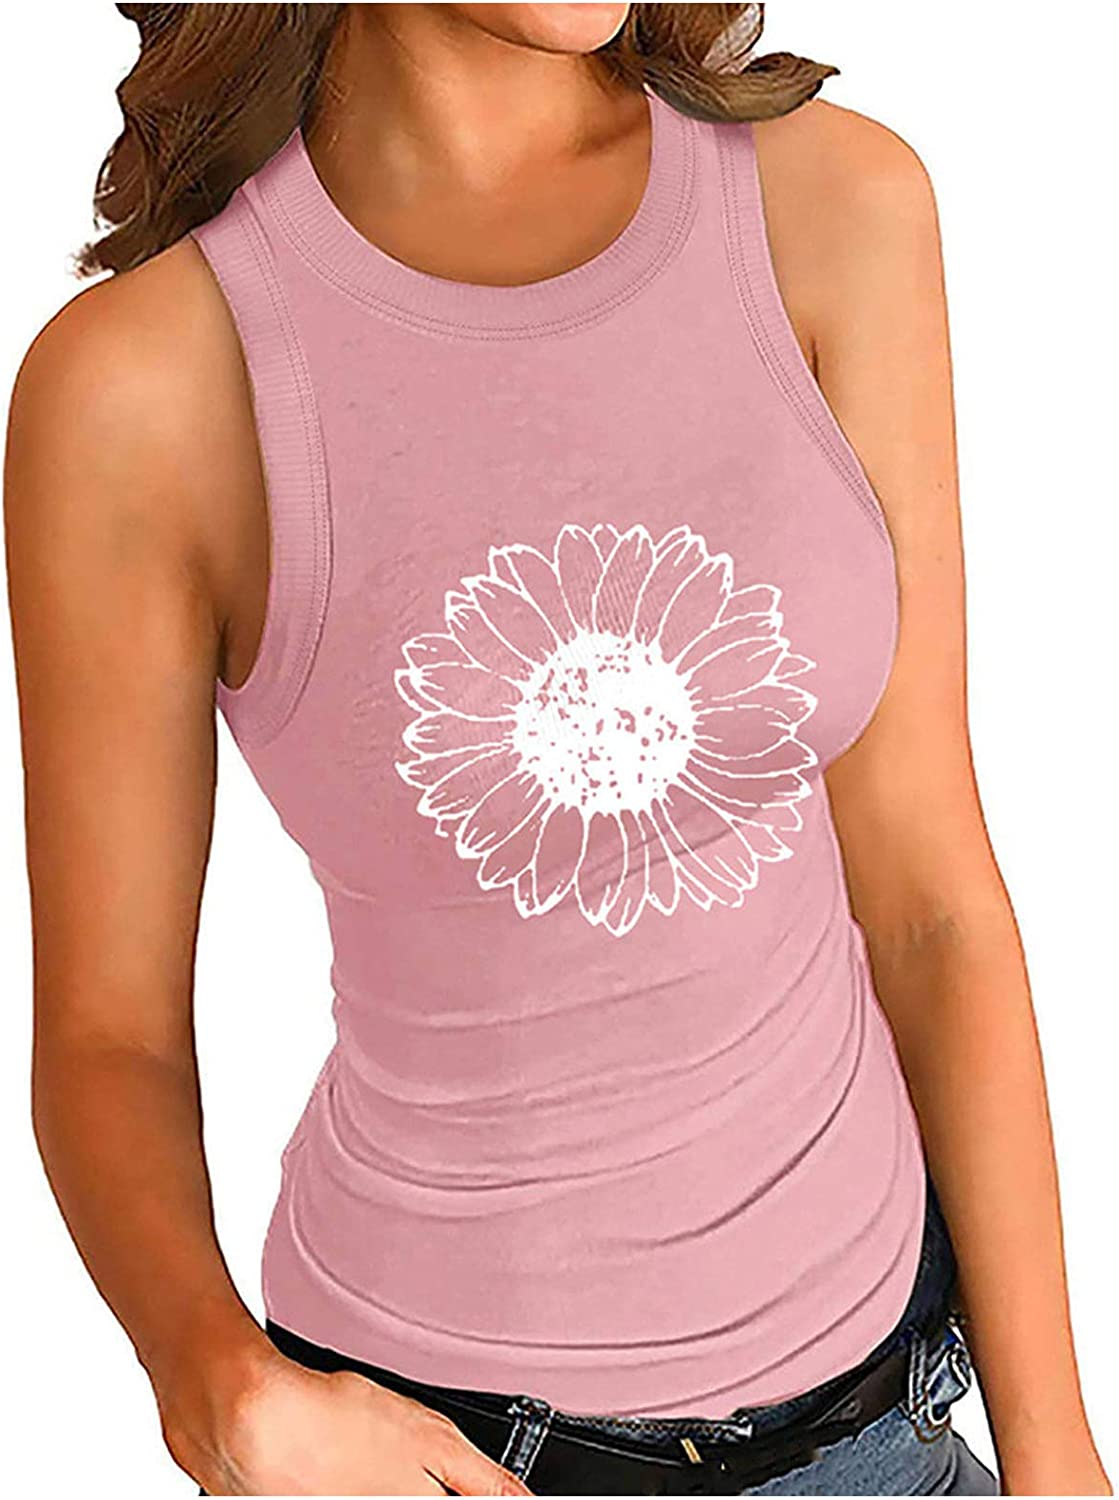 Forwelly Sunflower Graphic T Shirt for Women Summer Casual Sleeveless Tank Top Sport Yoga Vest Blouse